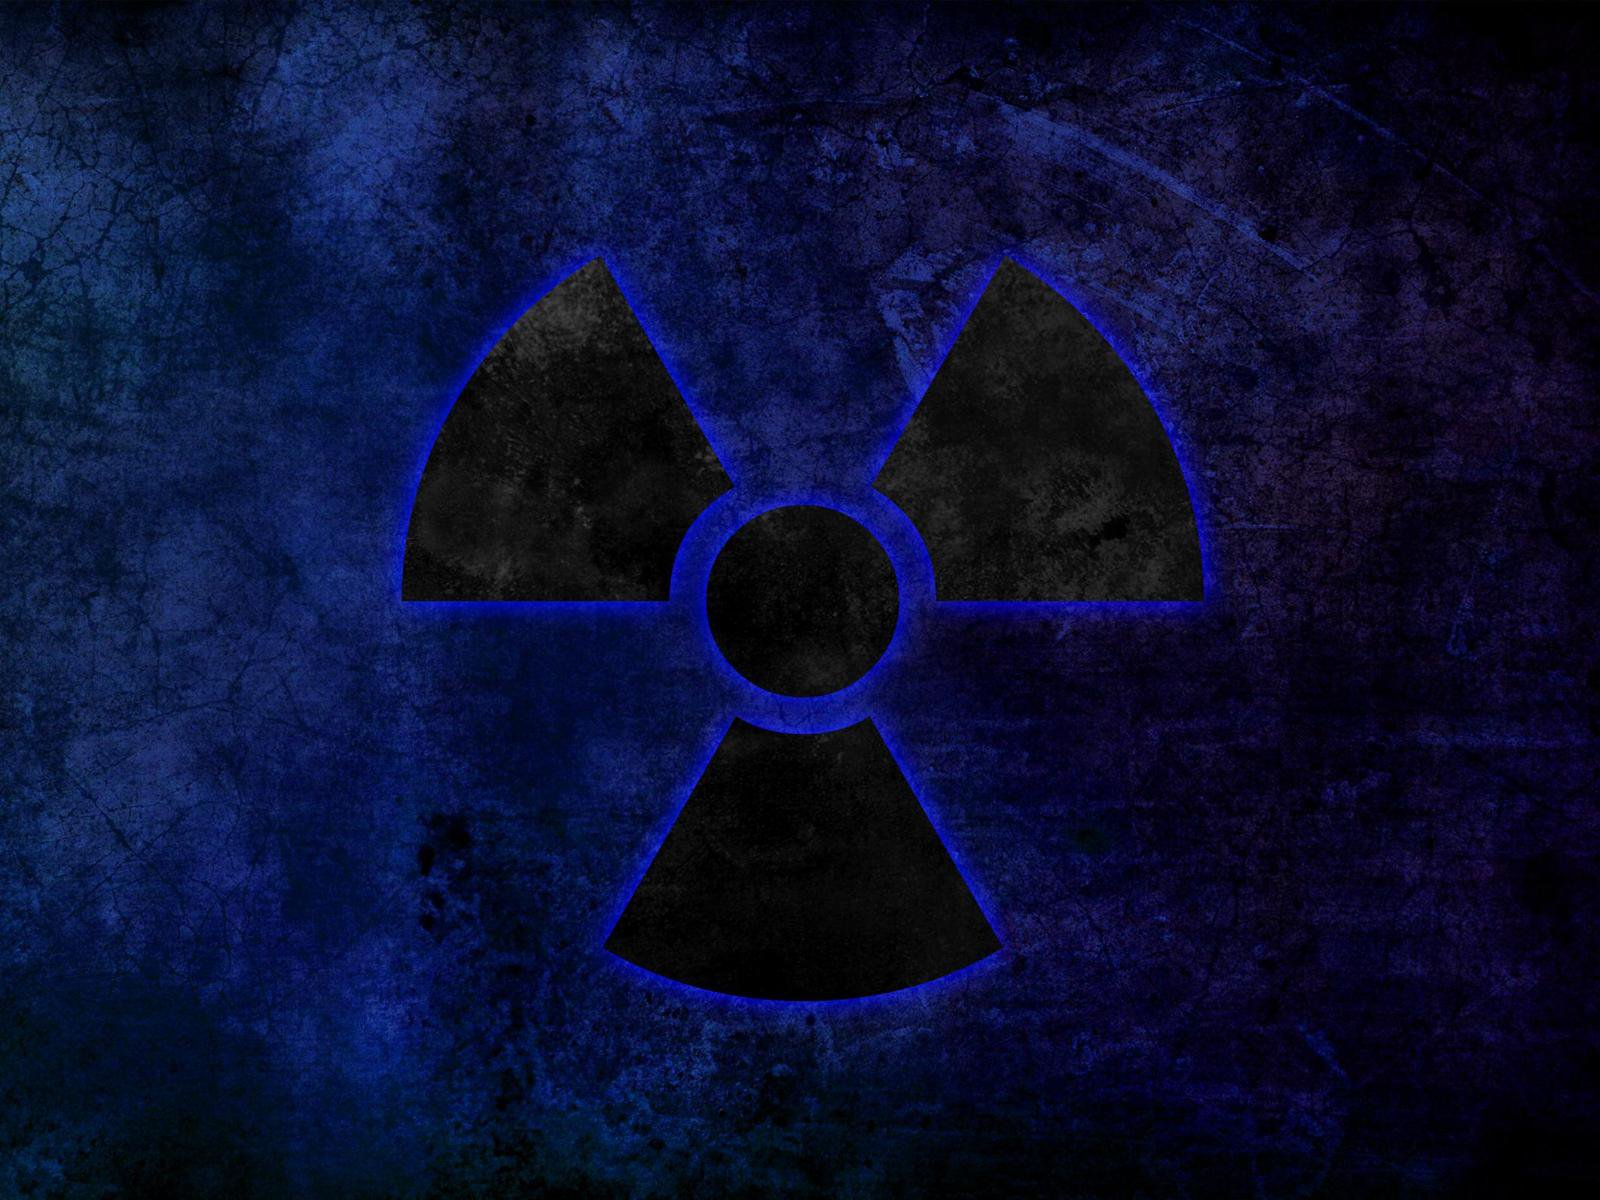 Blue and Black Nuke Wallpaper and Background Image ...